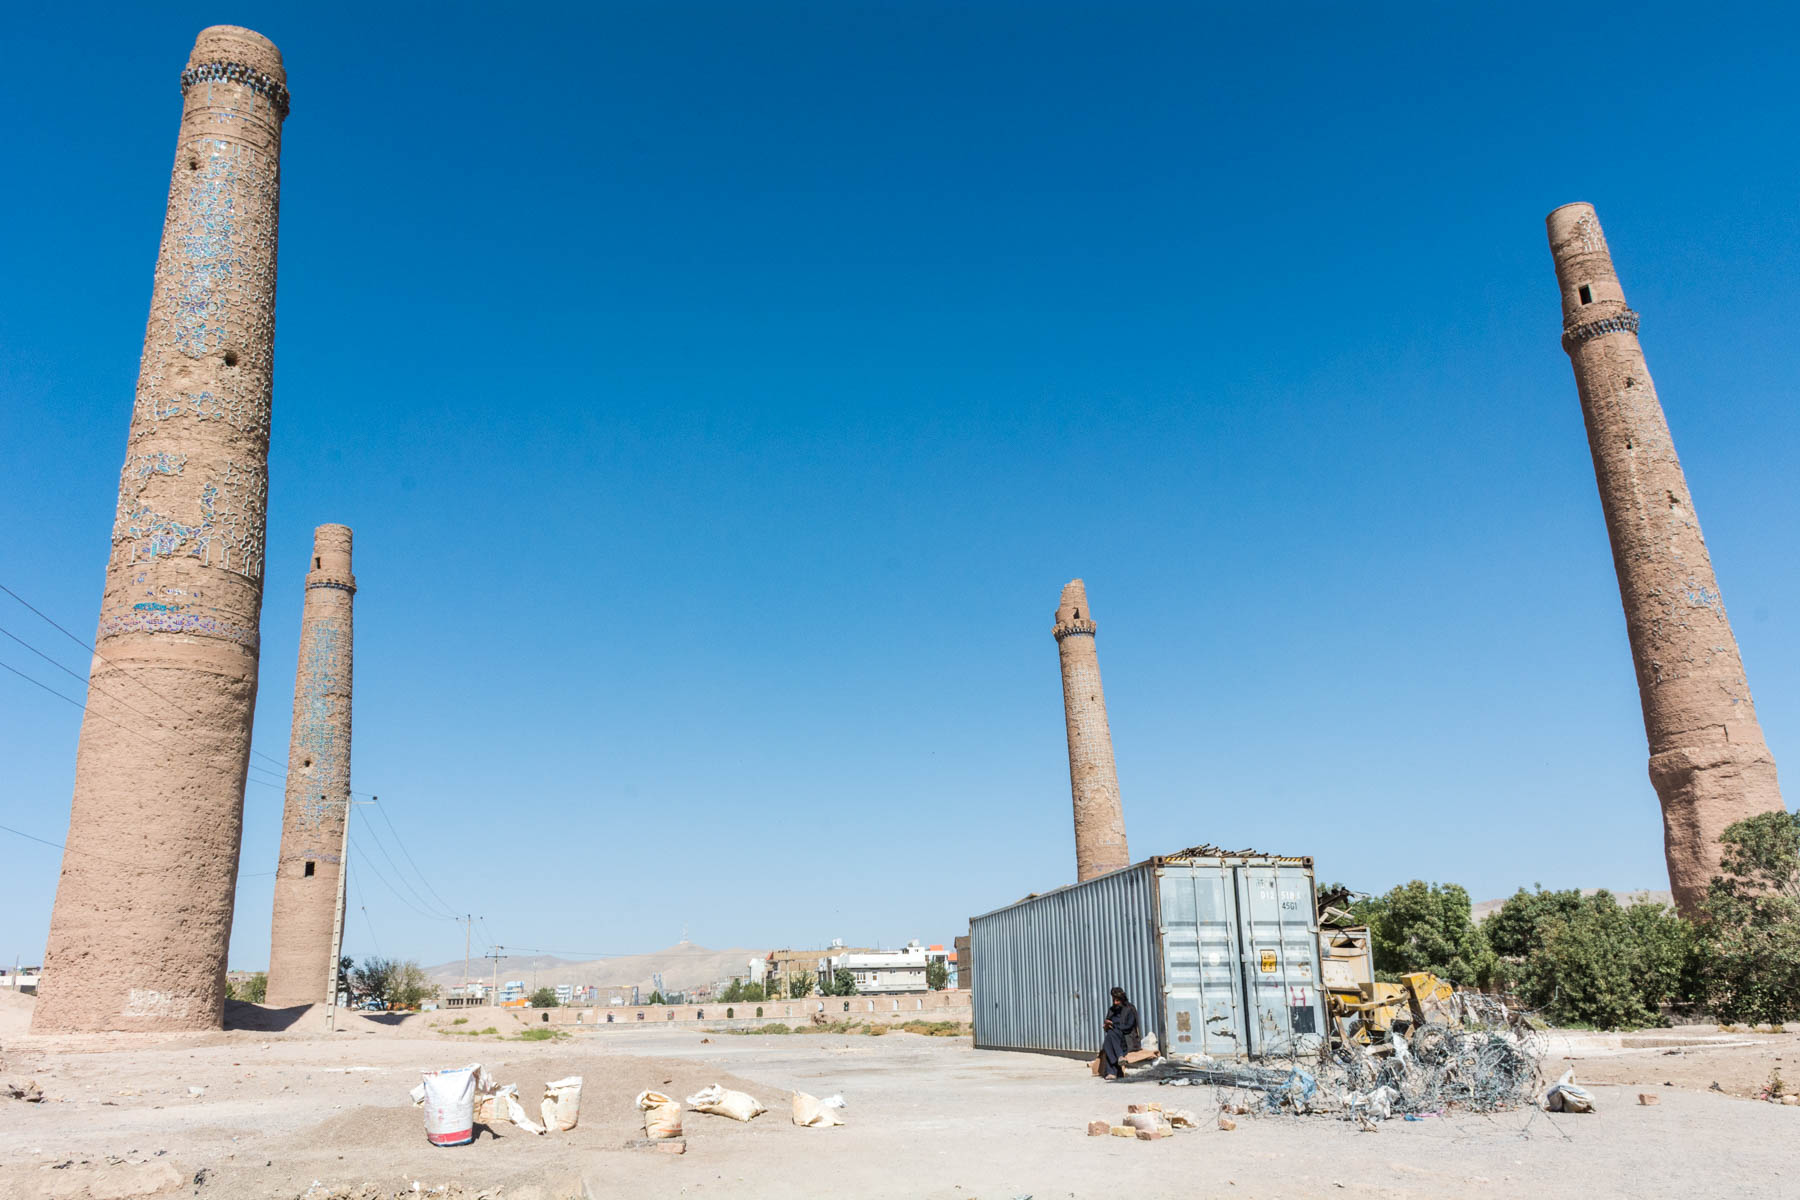 The last of the minarets in the Musalla complex in Herat, Afghanistan